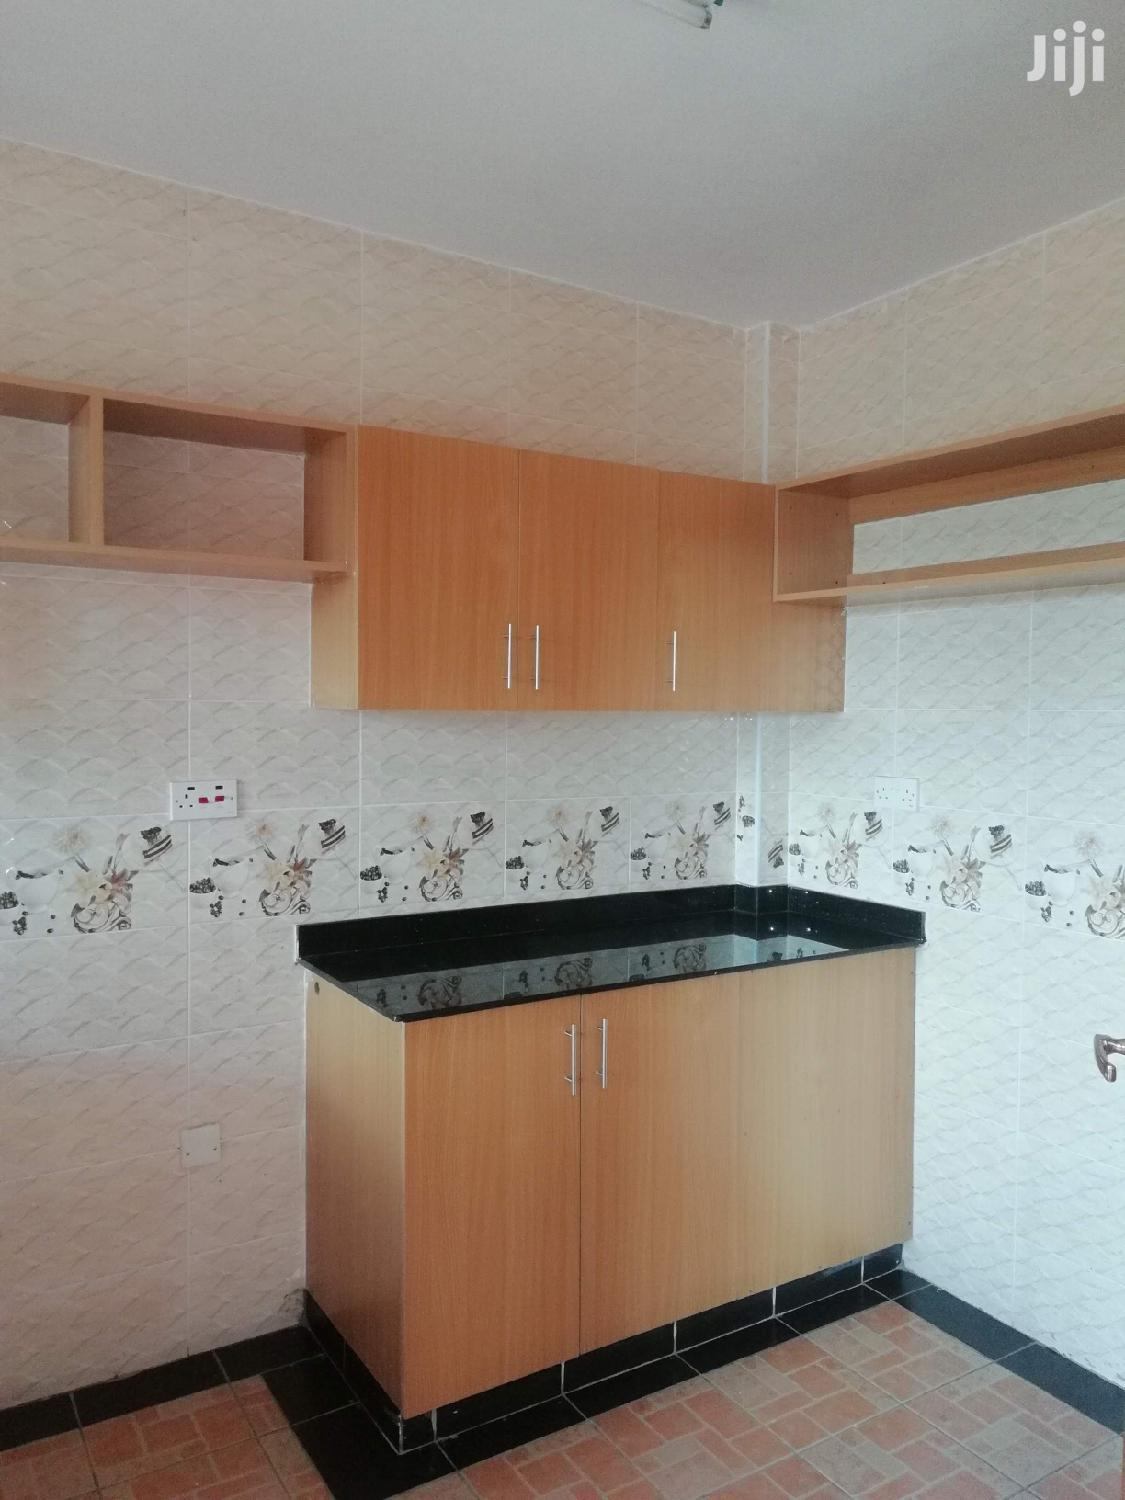 Property World,2brs Apartment With Generator And Very Secure | Houses & Apartments For Rent for sale in Lavington, Nairobi, Kenya